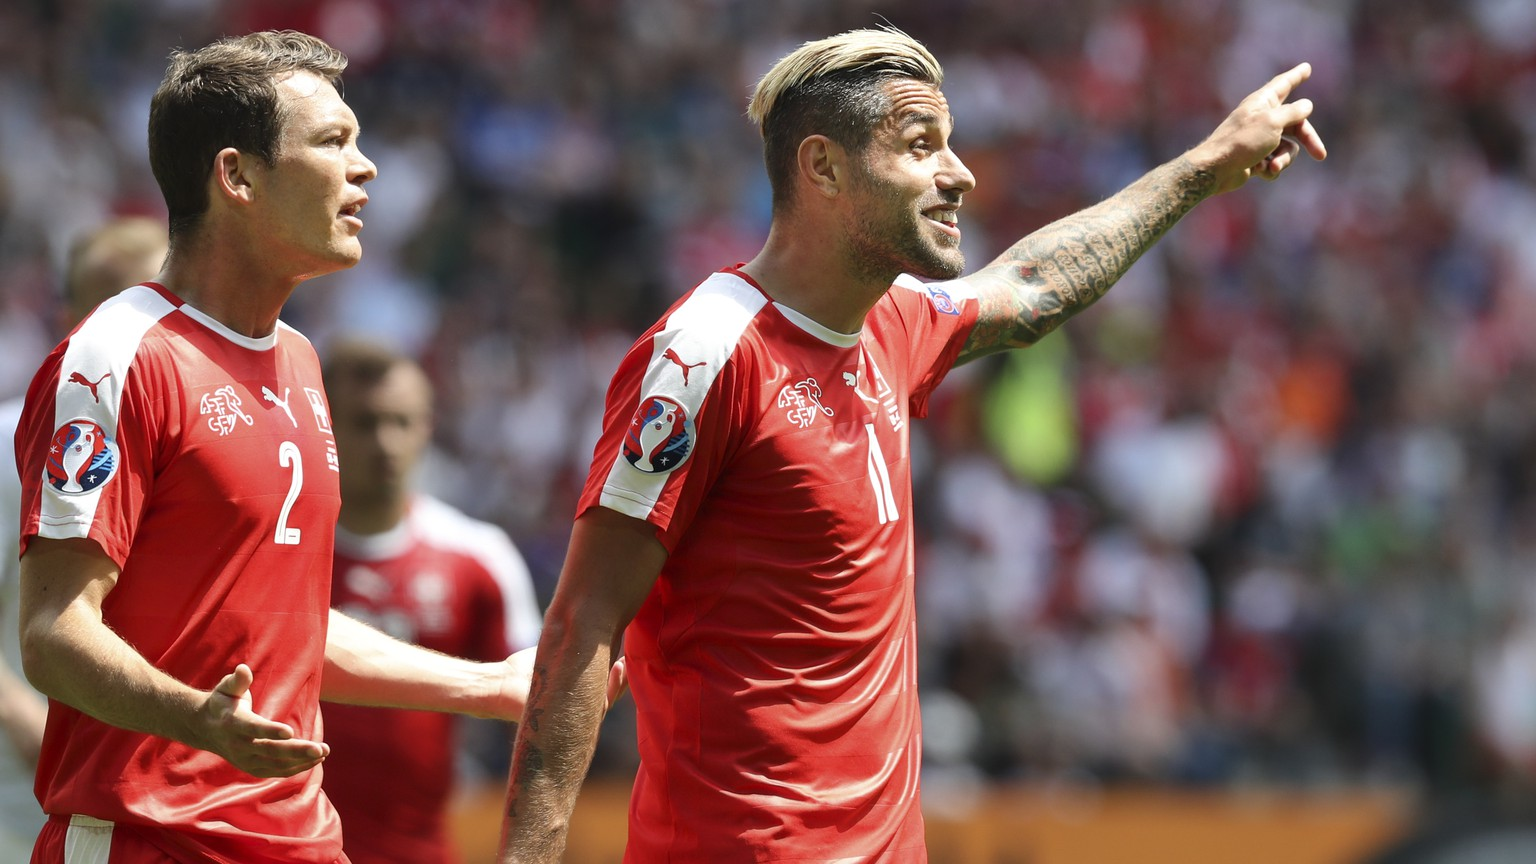 Switzerland's Stephan Lichtsteiner, left, and Valon Behrami gesture during the Euro 2016 round of 16 soccer match between Switzerland and Poland, at the Geoffroy Guichard stadium in Saint-Etienne, France, Saturday, June 25, 2016. (AP Photo/Thanassis Stavrakis)